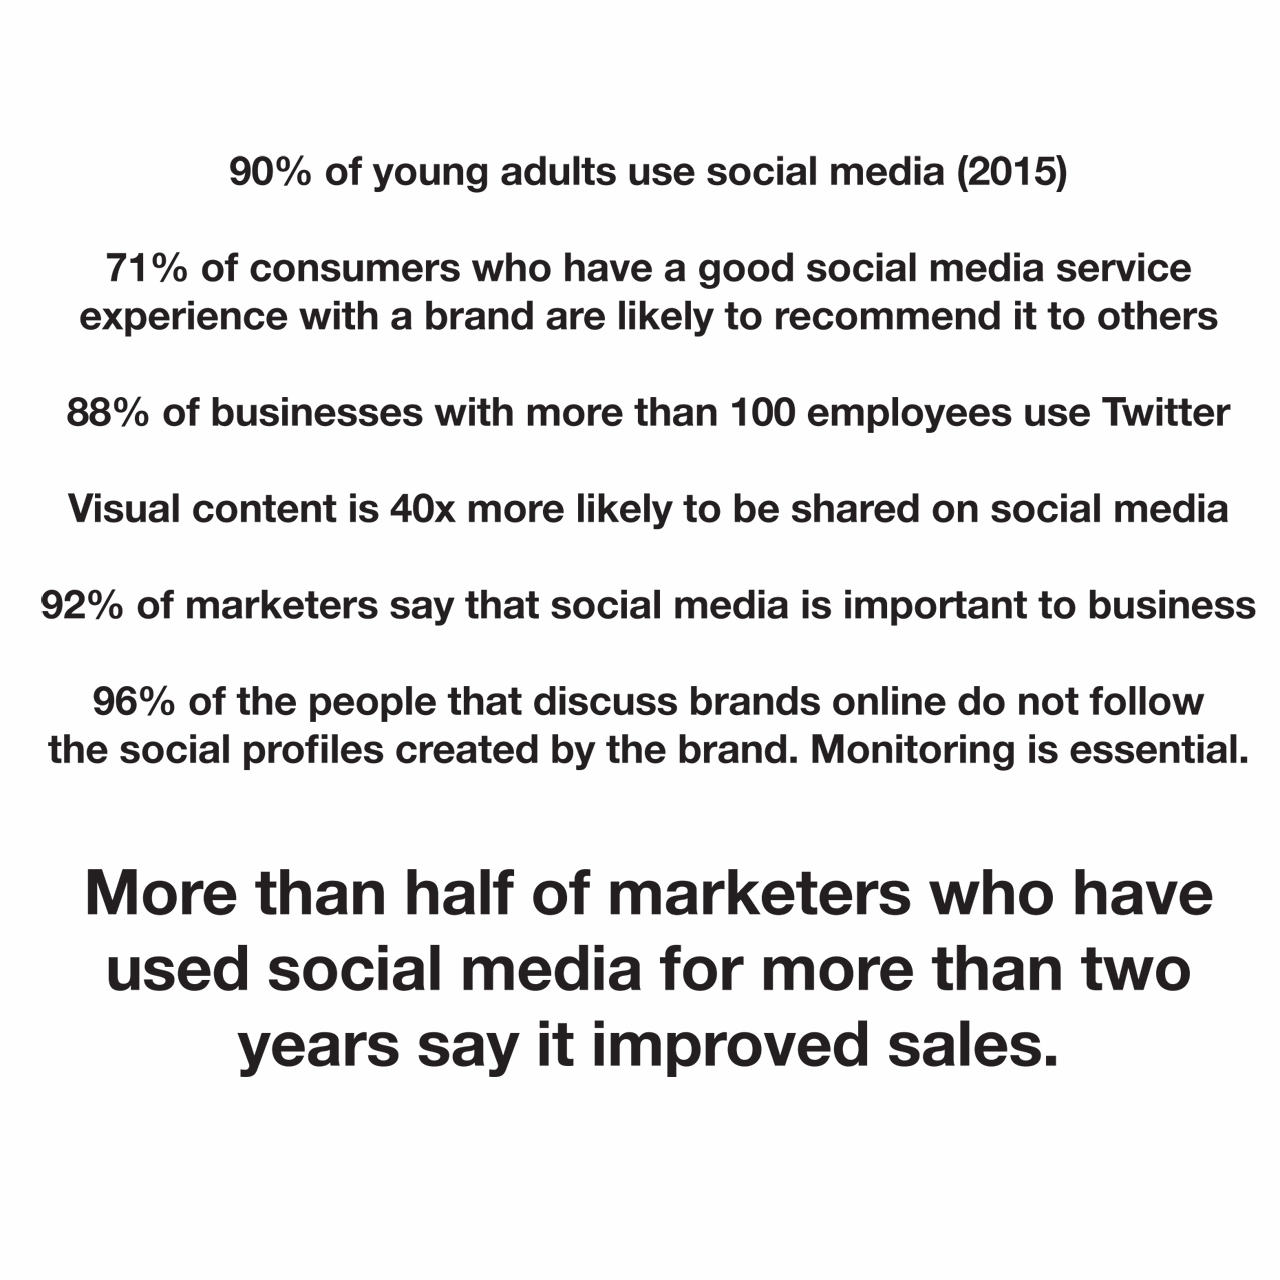 Statistics on social media: 90% of young adults use social media; 71% of consumers who have had a good social media service experience with a brand are likely to recommend it to others; 88% of businesses with more than 100 employees use Twitter.